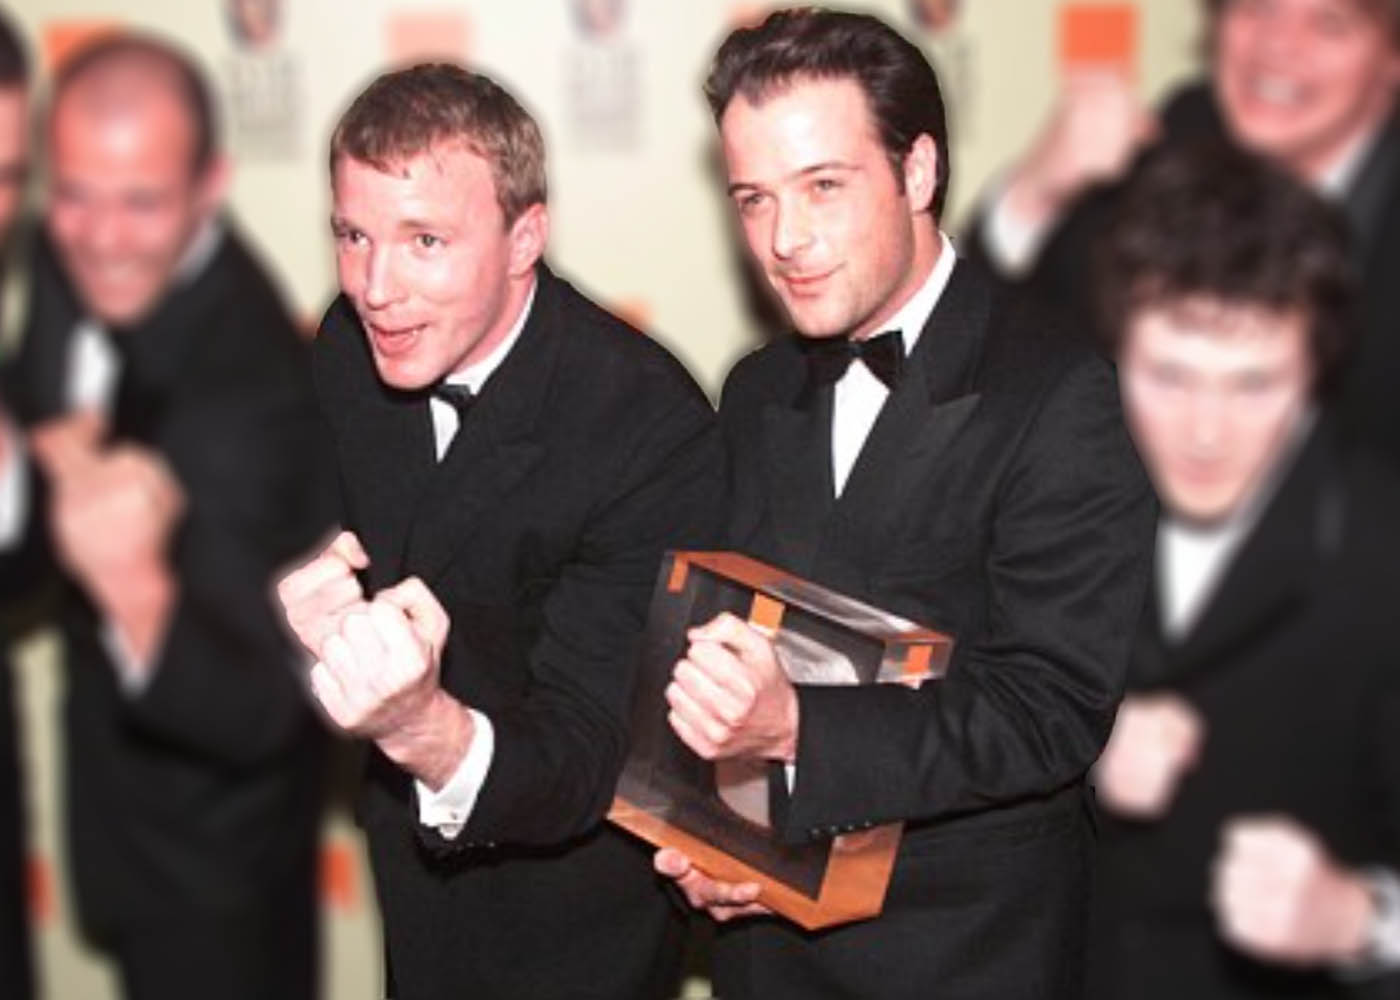 matthew-vaughn-guy-ritchie